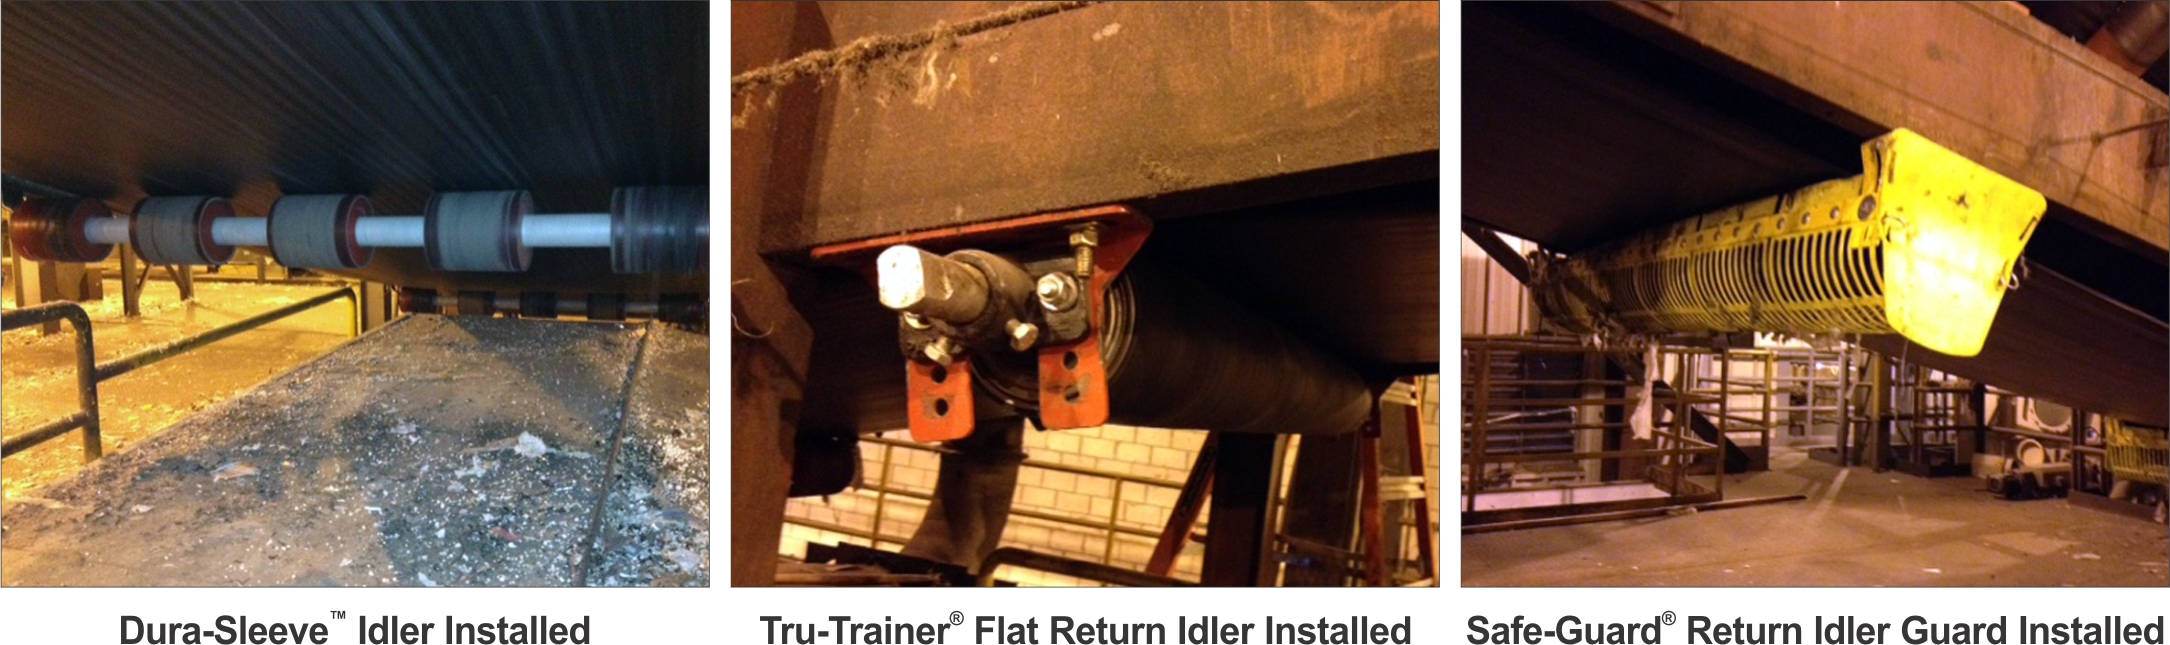 Waste to Energy Facility_Flat Return Tru-Trainer & Dura-Sleeve Case Study - EG